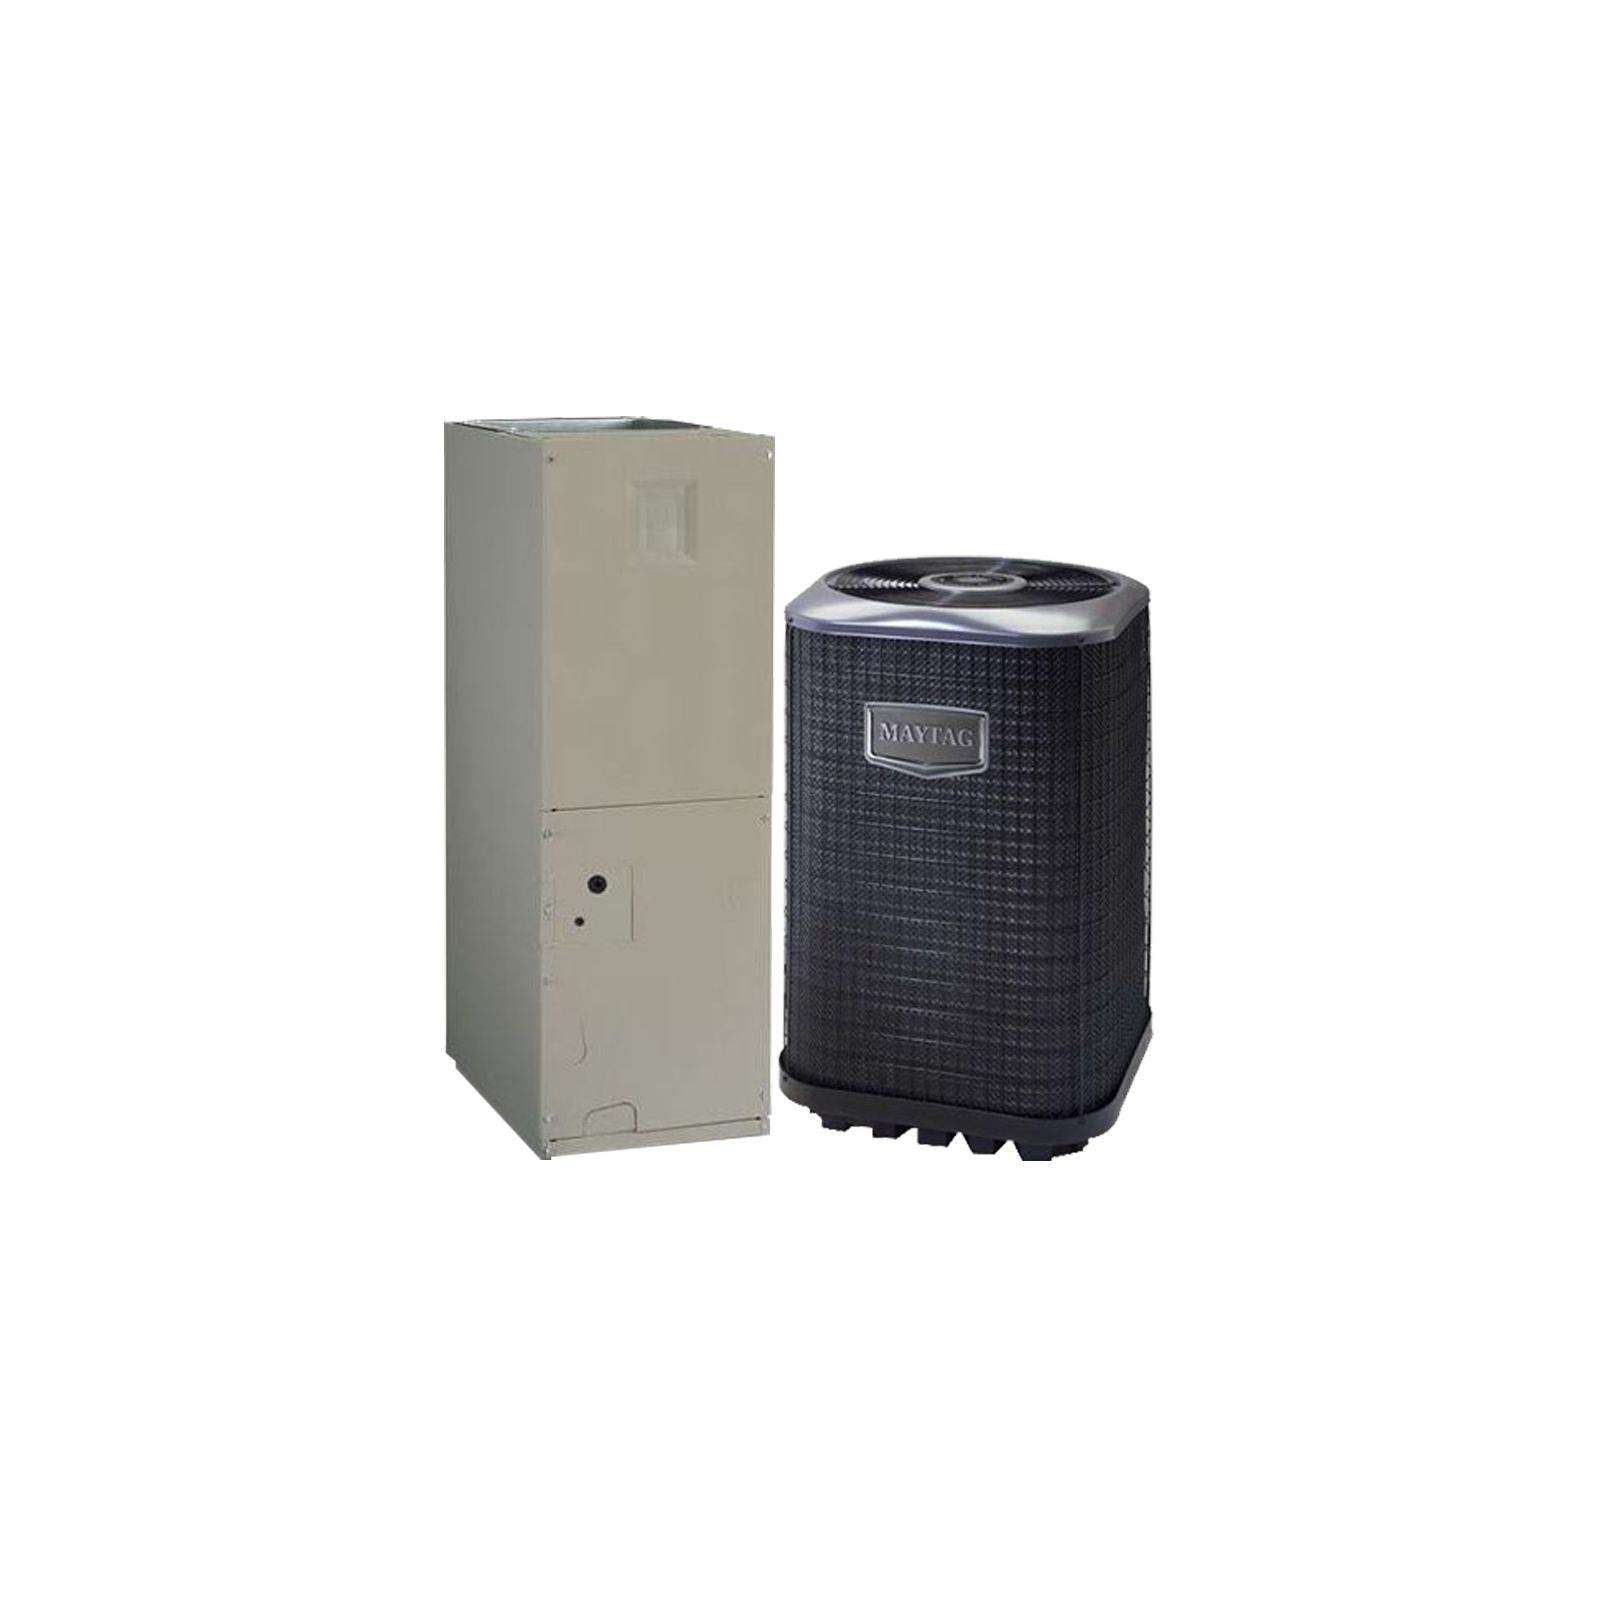 Maytag (AHRI 5561782) MSA6BF Series 2 Ton 16 SEER, Air Conditioner System